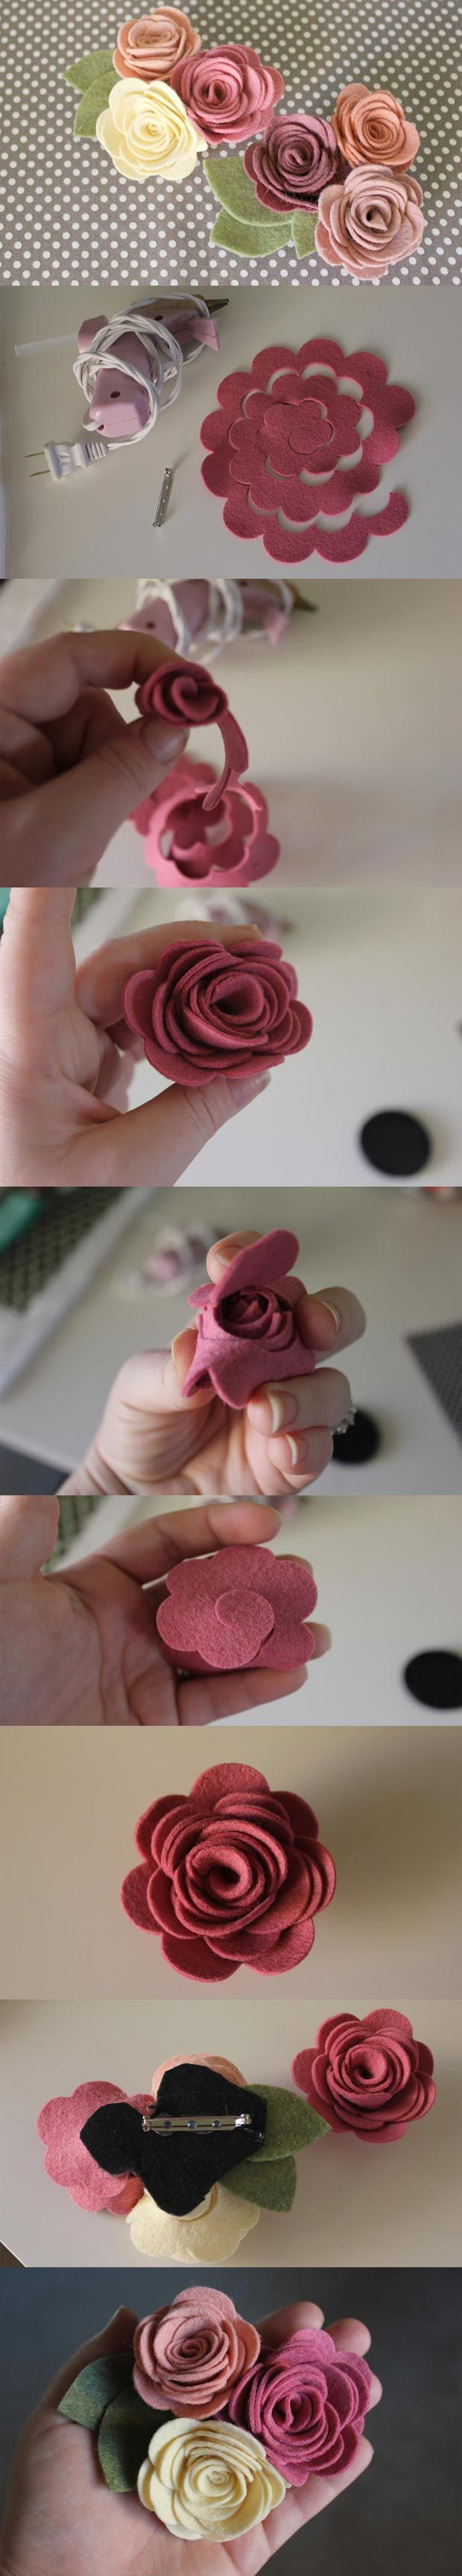 Felt Rose- so pretty! #Polymat #Felt will work greatly for making roses!